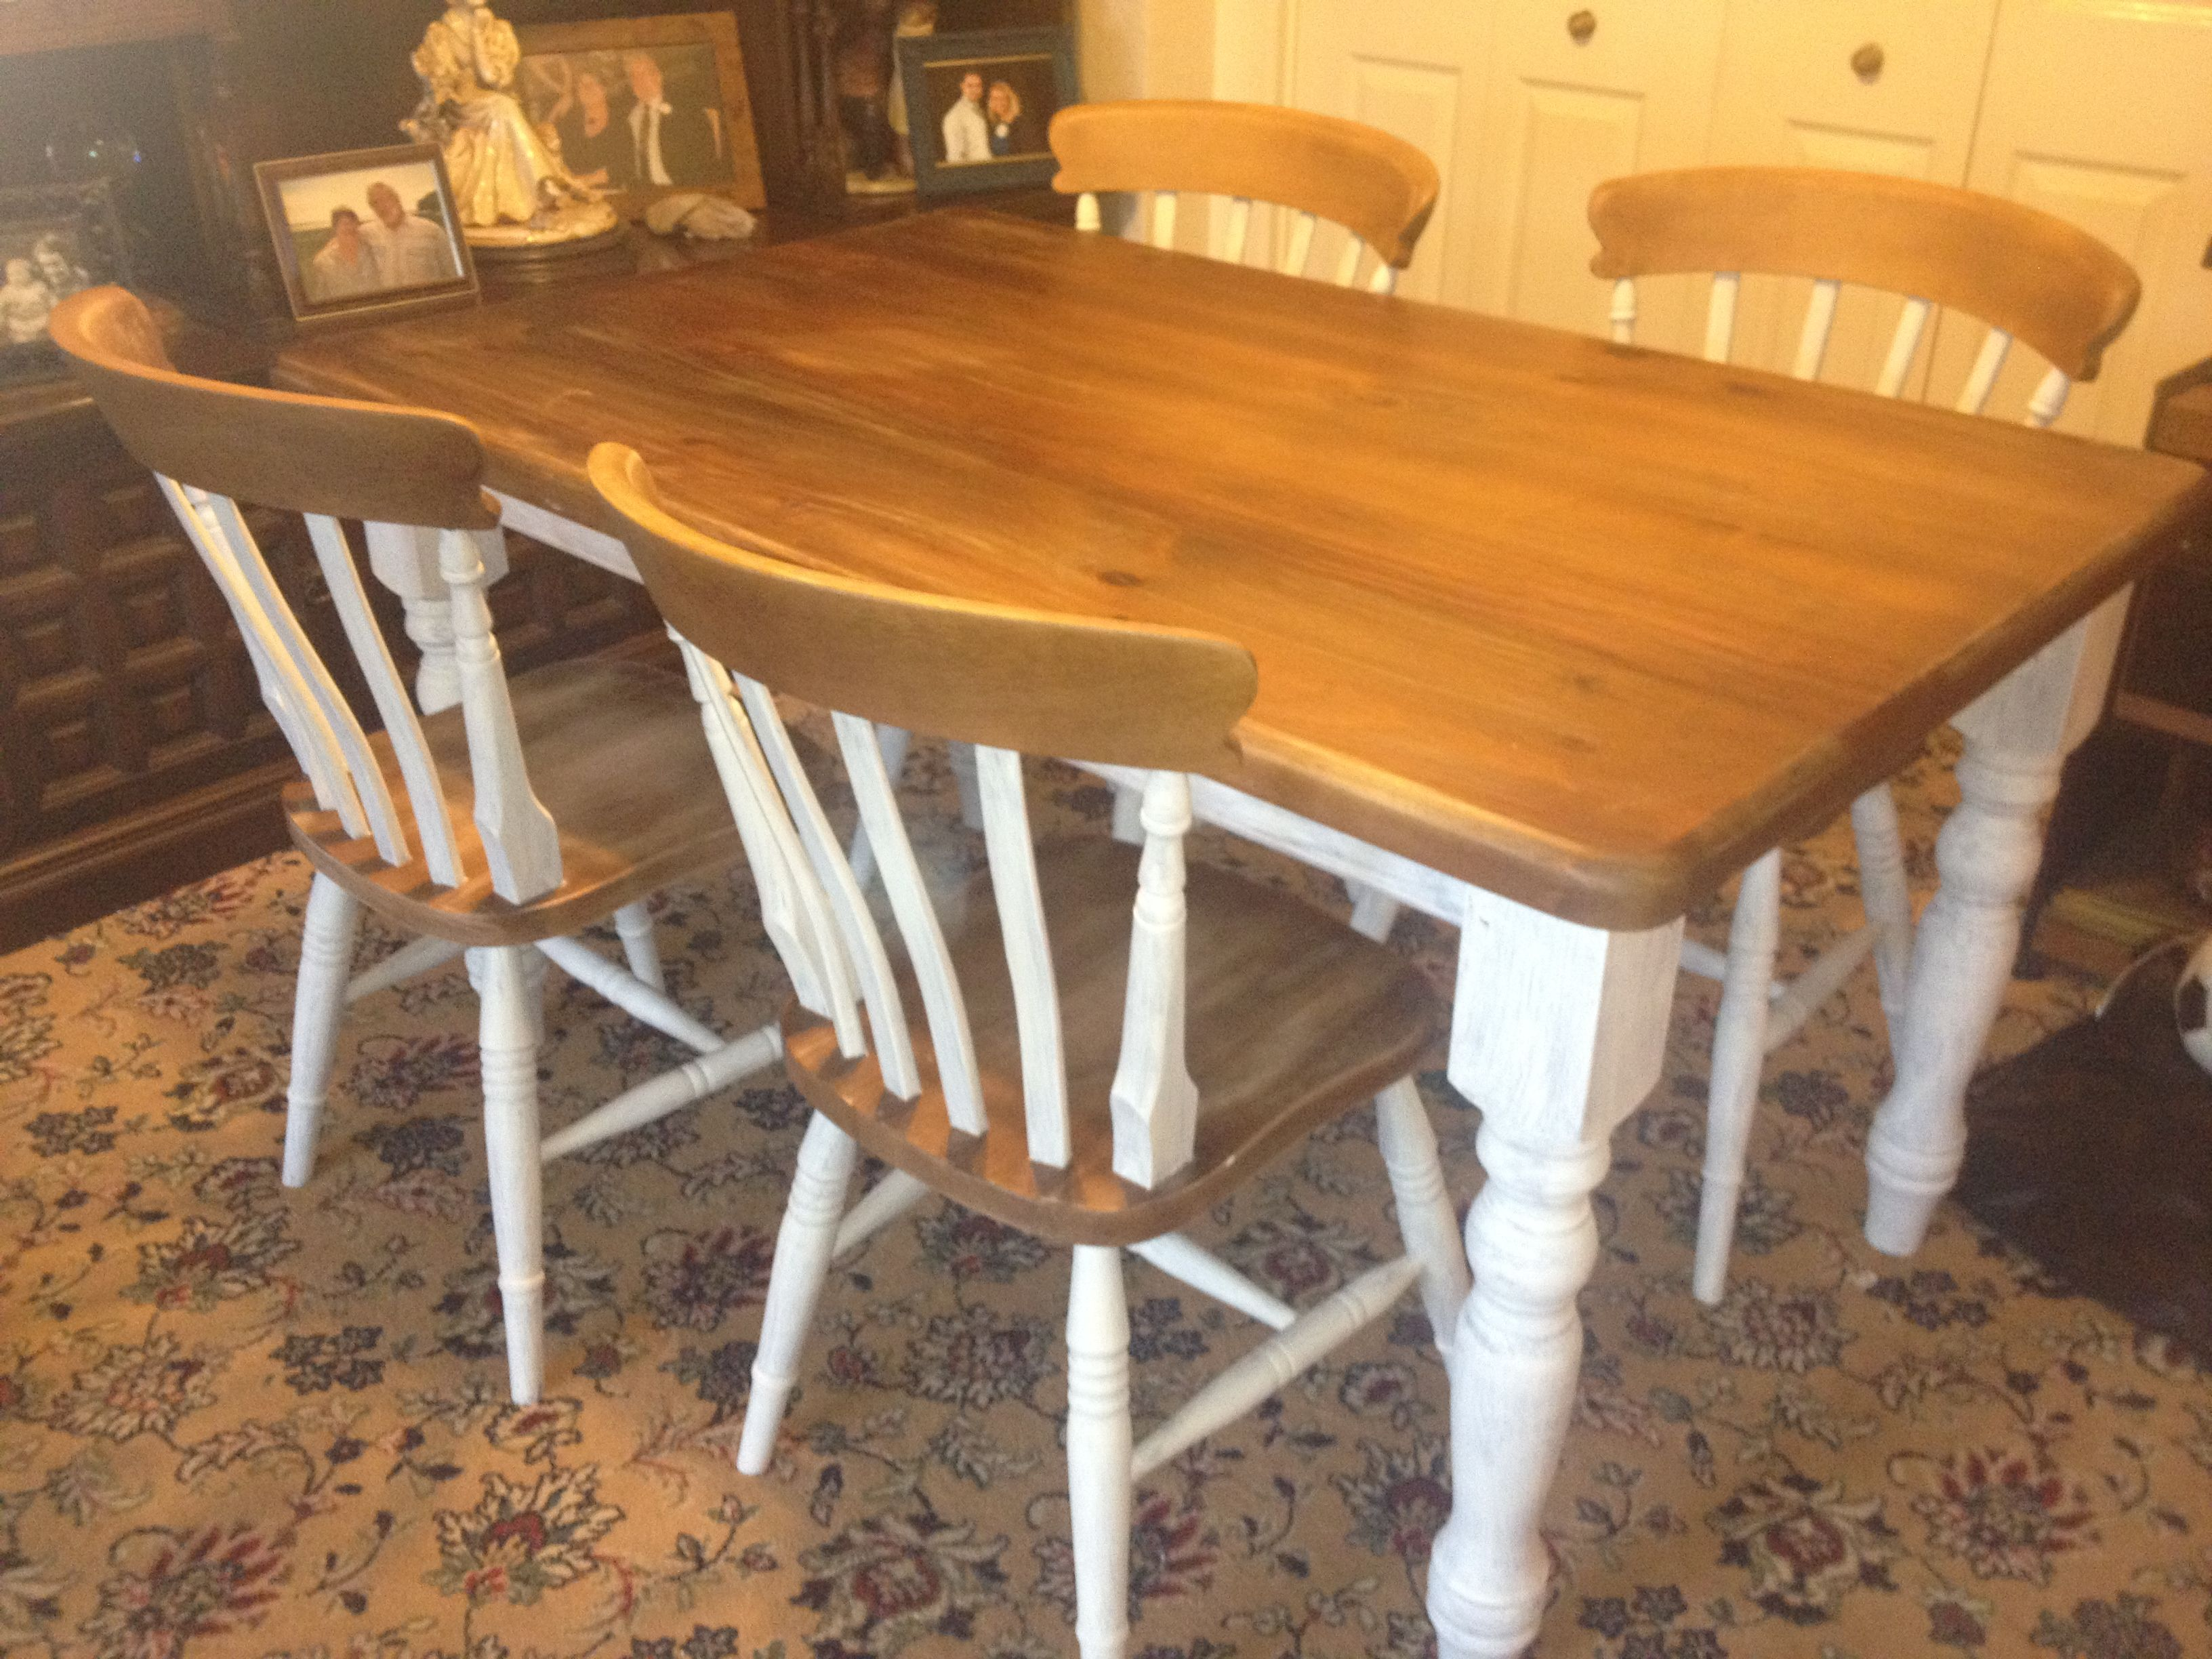 upcycled dining table and chairs houseprojects